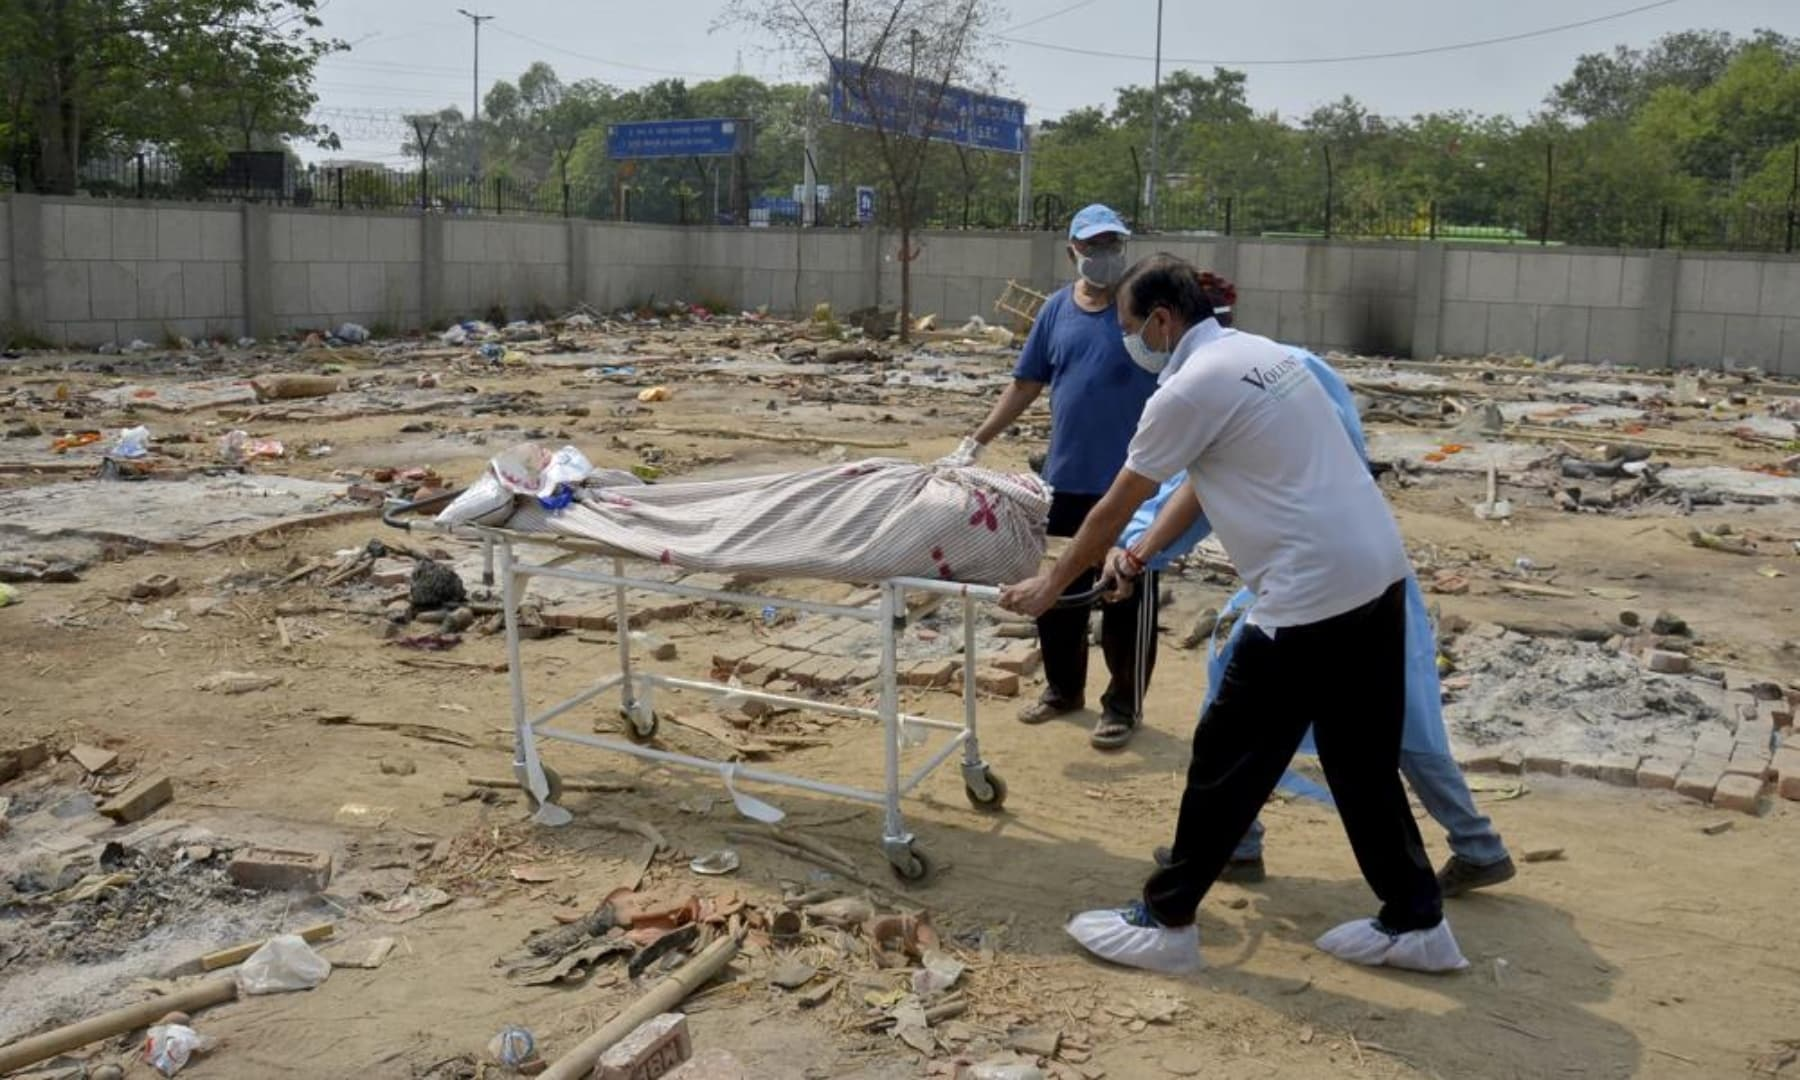 The body of a Covid-19 victim is wheeled in a ground that has been converted into a crematorium in New Delhi, India, May 1, 2021. — AP